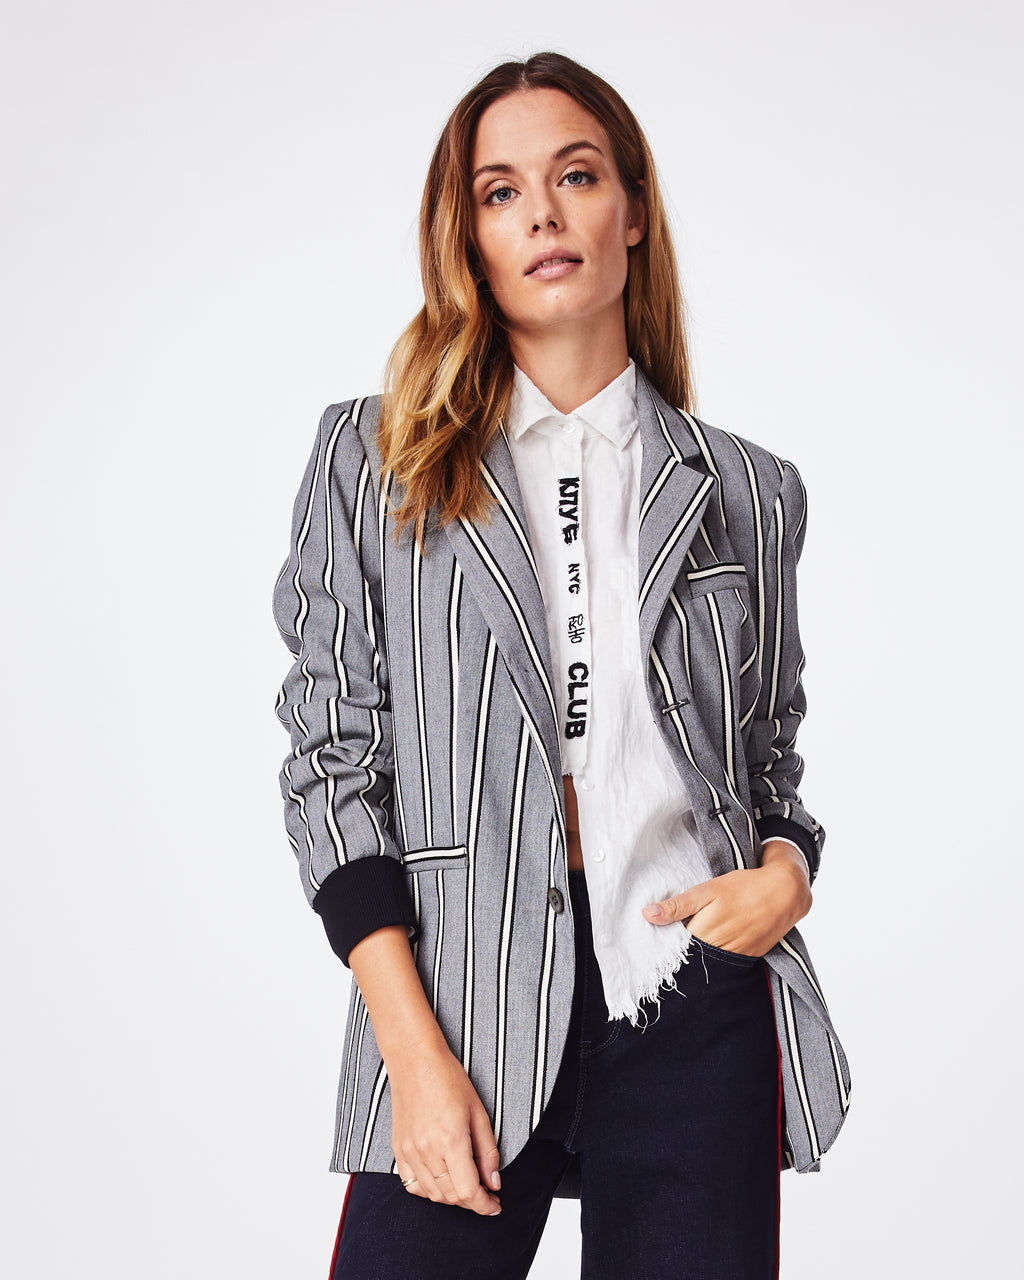 CD10083 - STRETCH WOVEN STRIPE BOYFRIEND JACKET - outerwear - jackets - This boyfriend jacket is the menswear inspired moment your wardrobe needs this season. A little oversized with a little stretch, this jacket features front pockets, ribbed cuffs, and is fully lined.